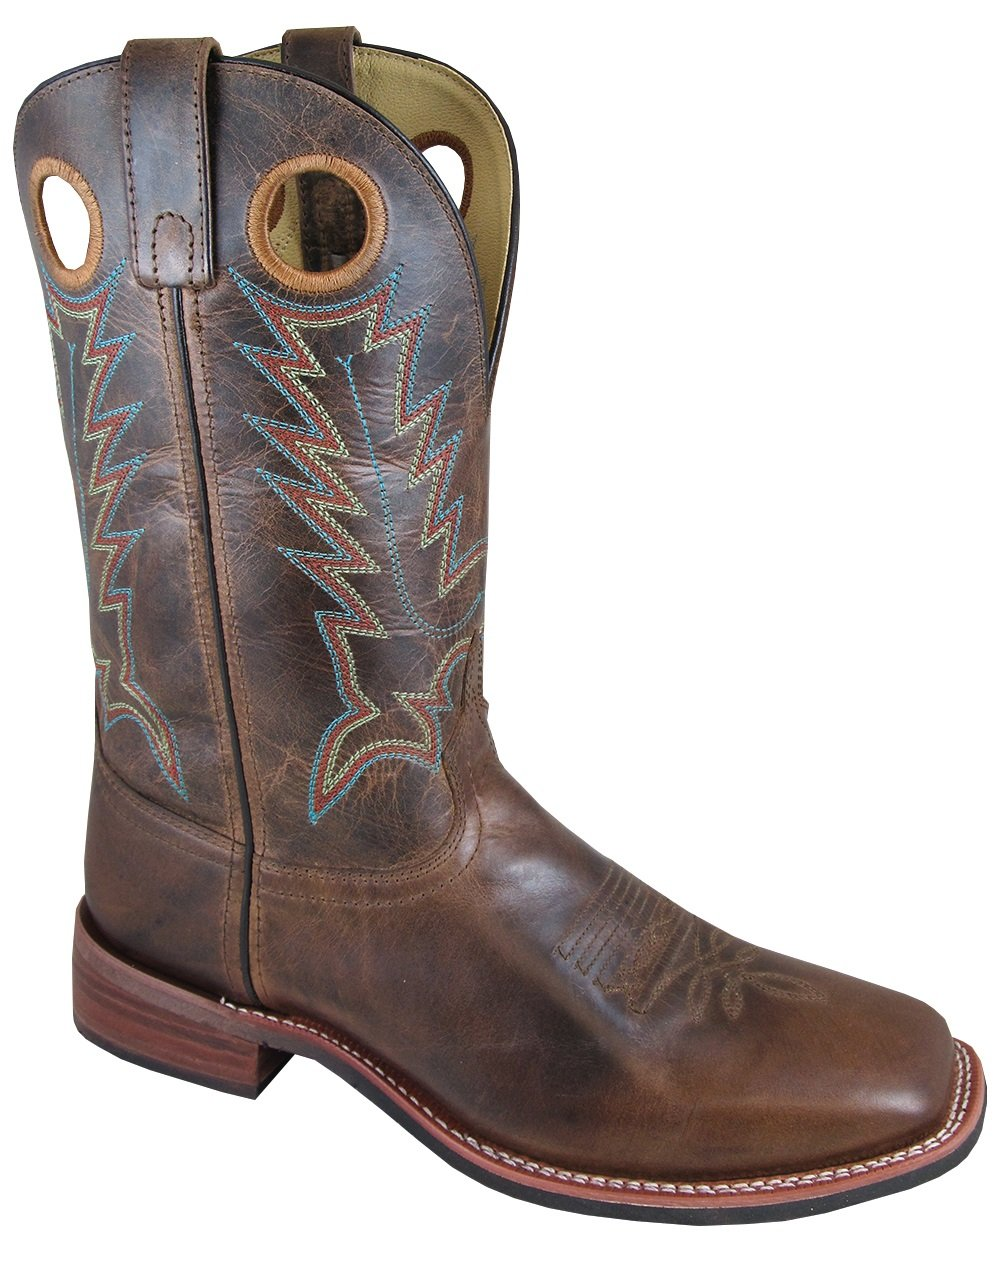 Smoky Mountain Men's Blake Western Boot Square Toe - 4655 B01M3T02X5 8.5 D(M) US|Brown